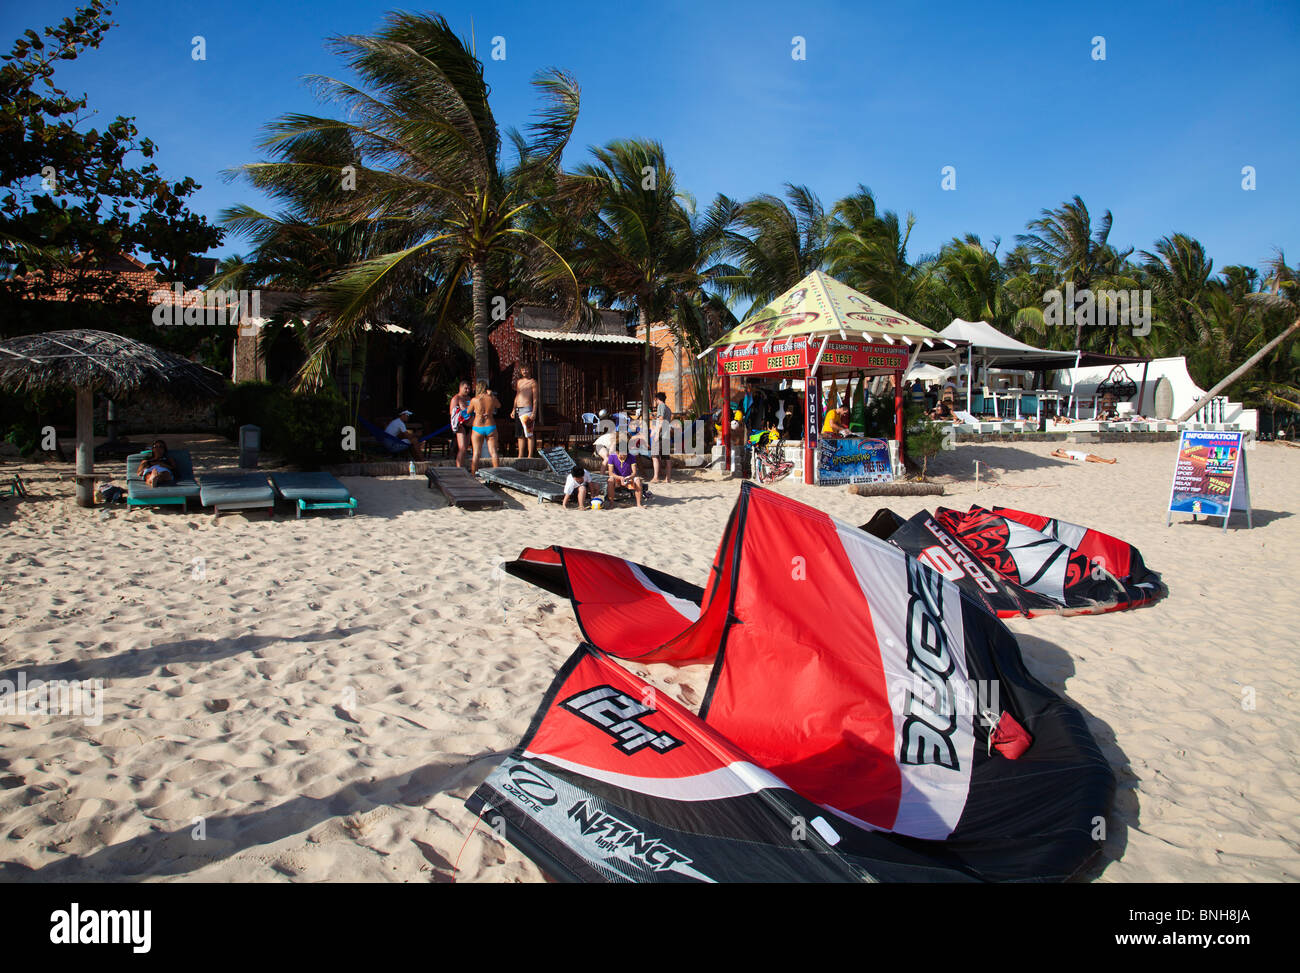 Kitesurfers at kitesurfing school - Stock Image